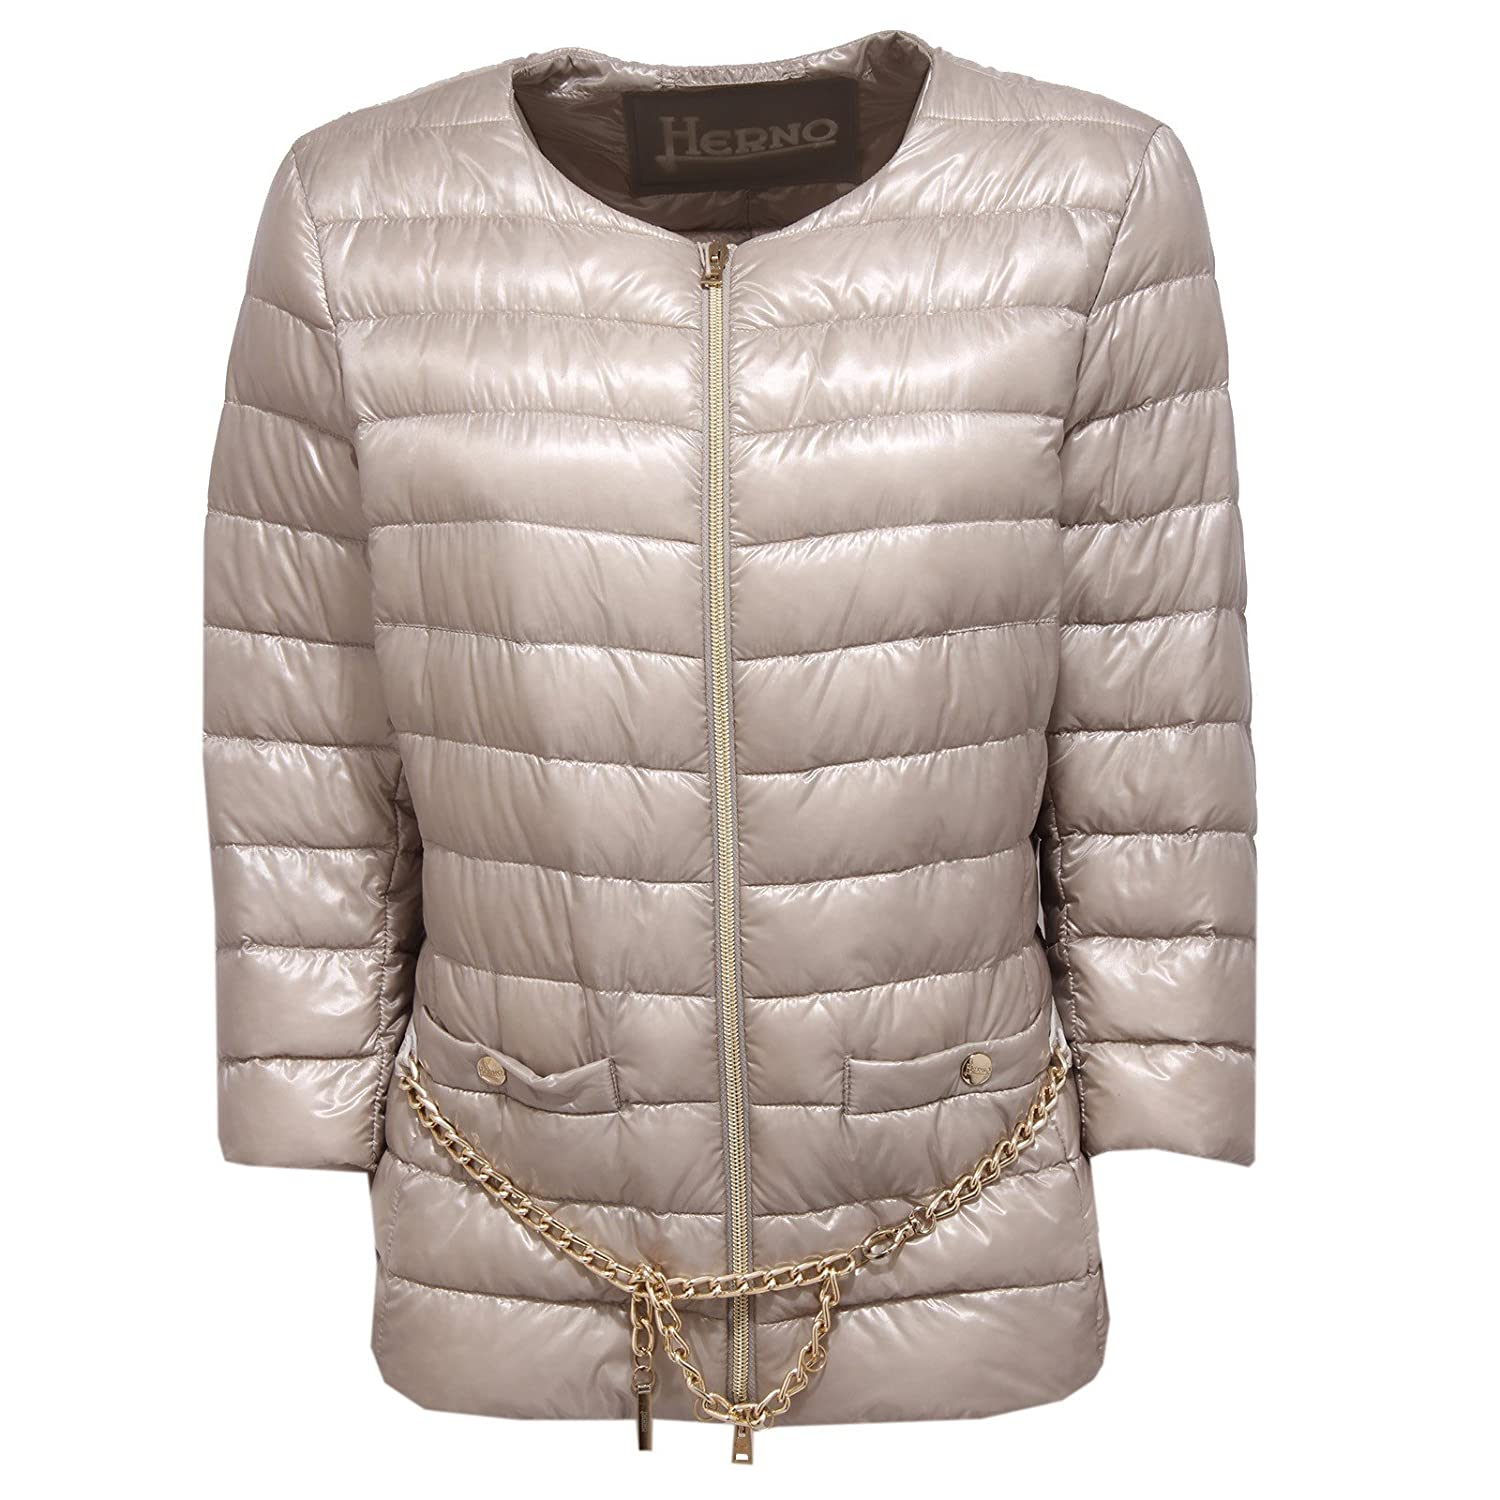 Herno 0507W piumino donna grey dove ultra light jacket woman: Amazon.es: Ropa y accesorios